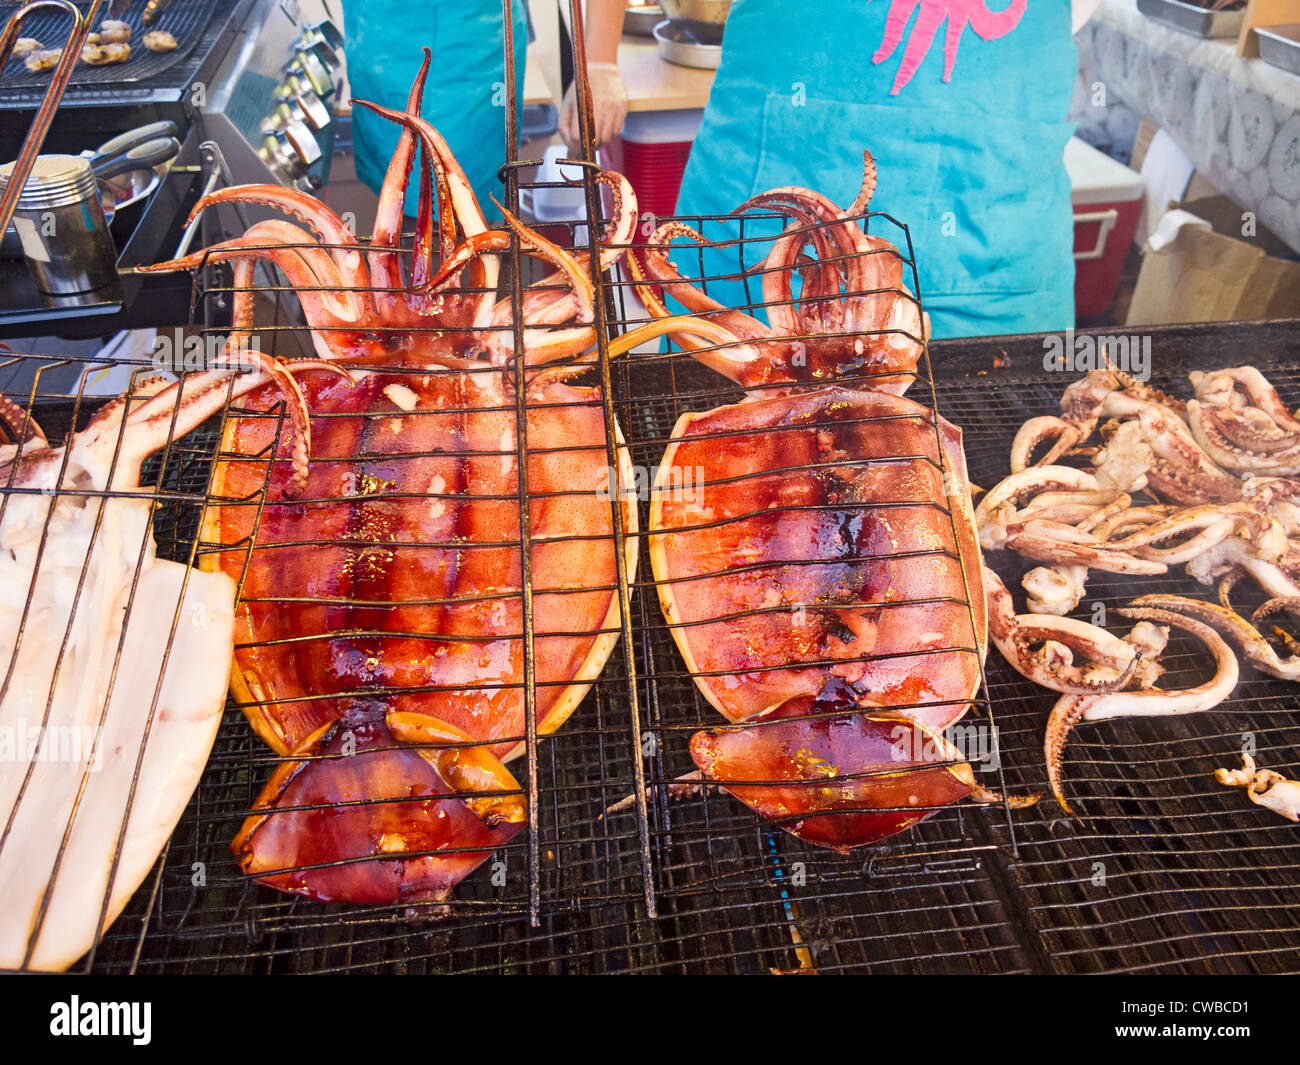 Squid served at Richmond Night Market, Richmond, British Columbia, Canada. - Stock Image